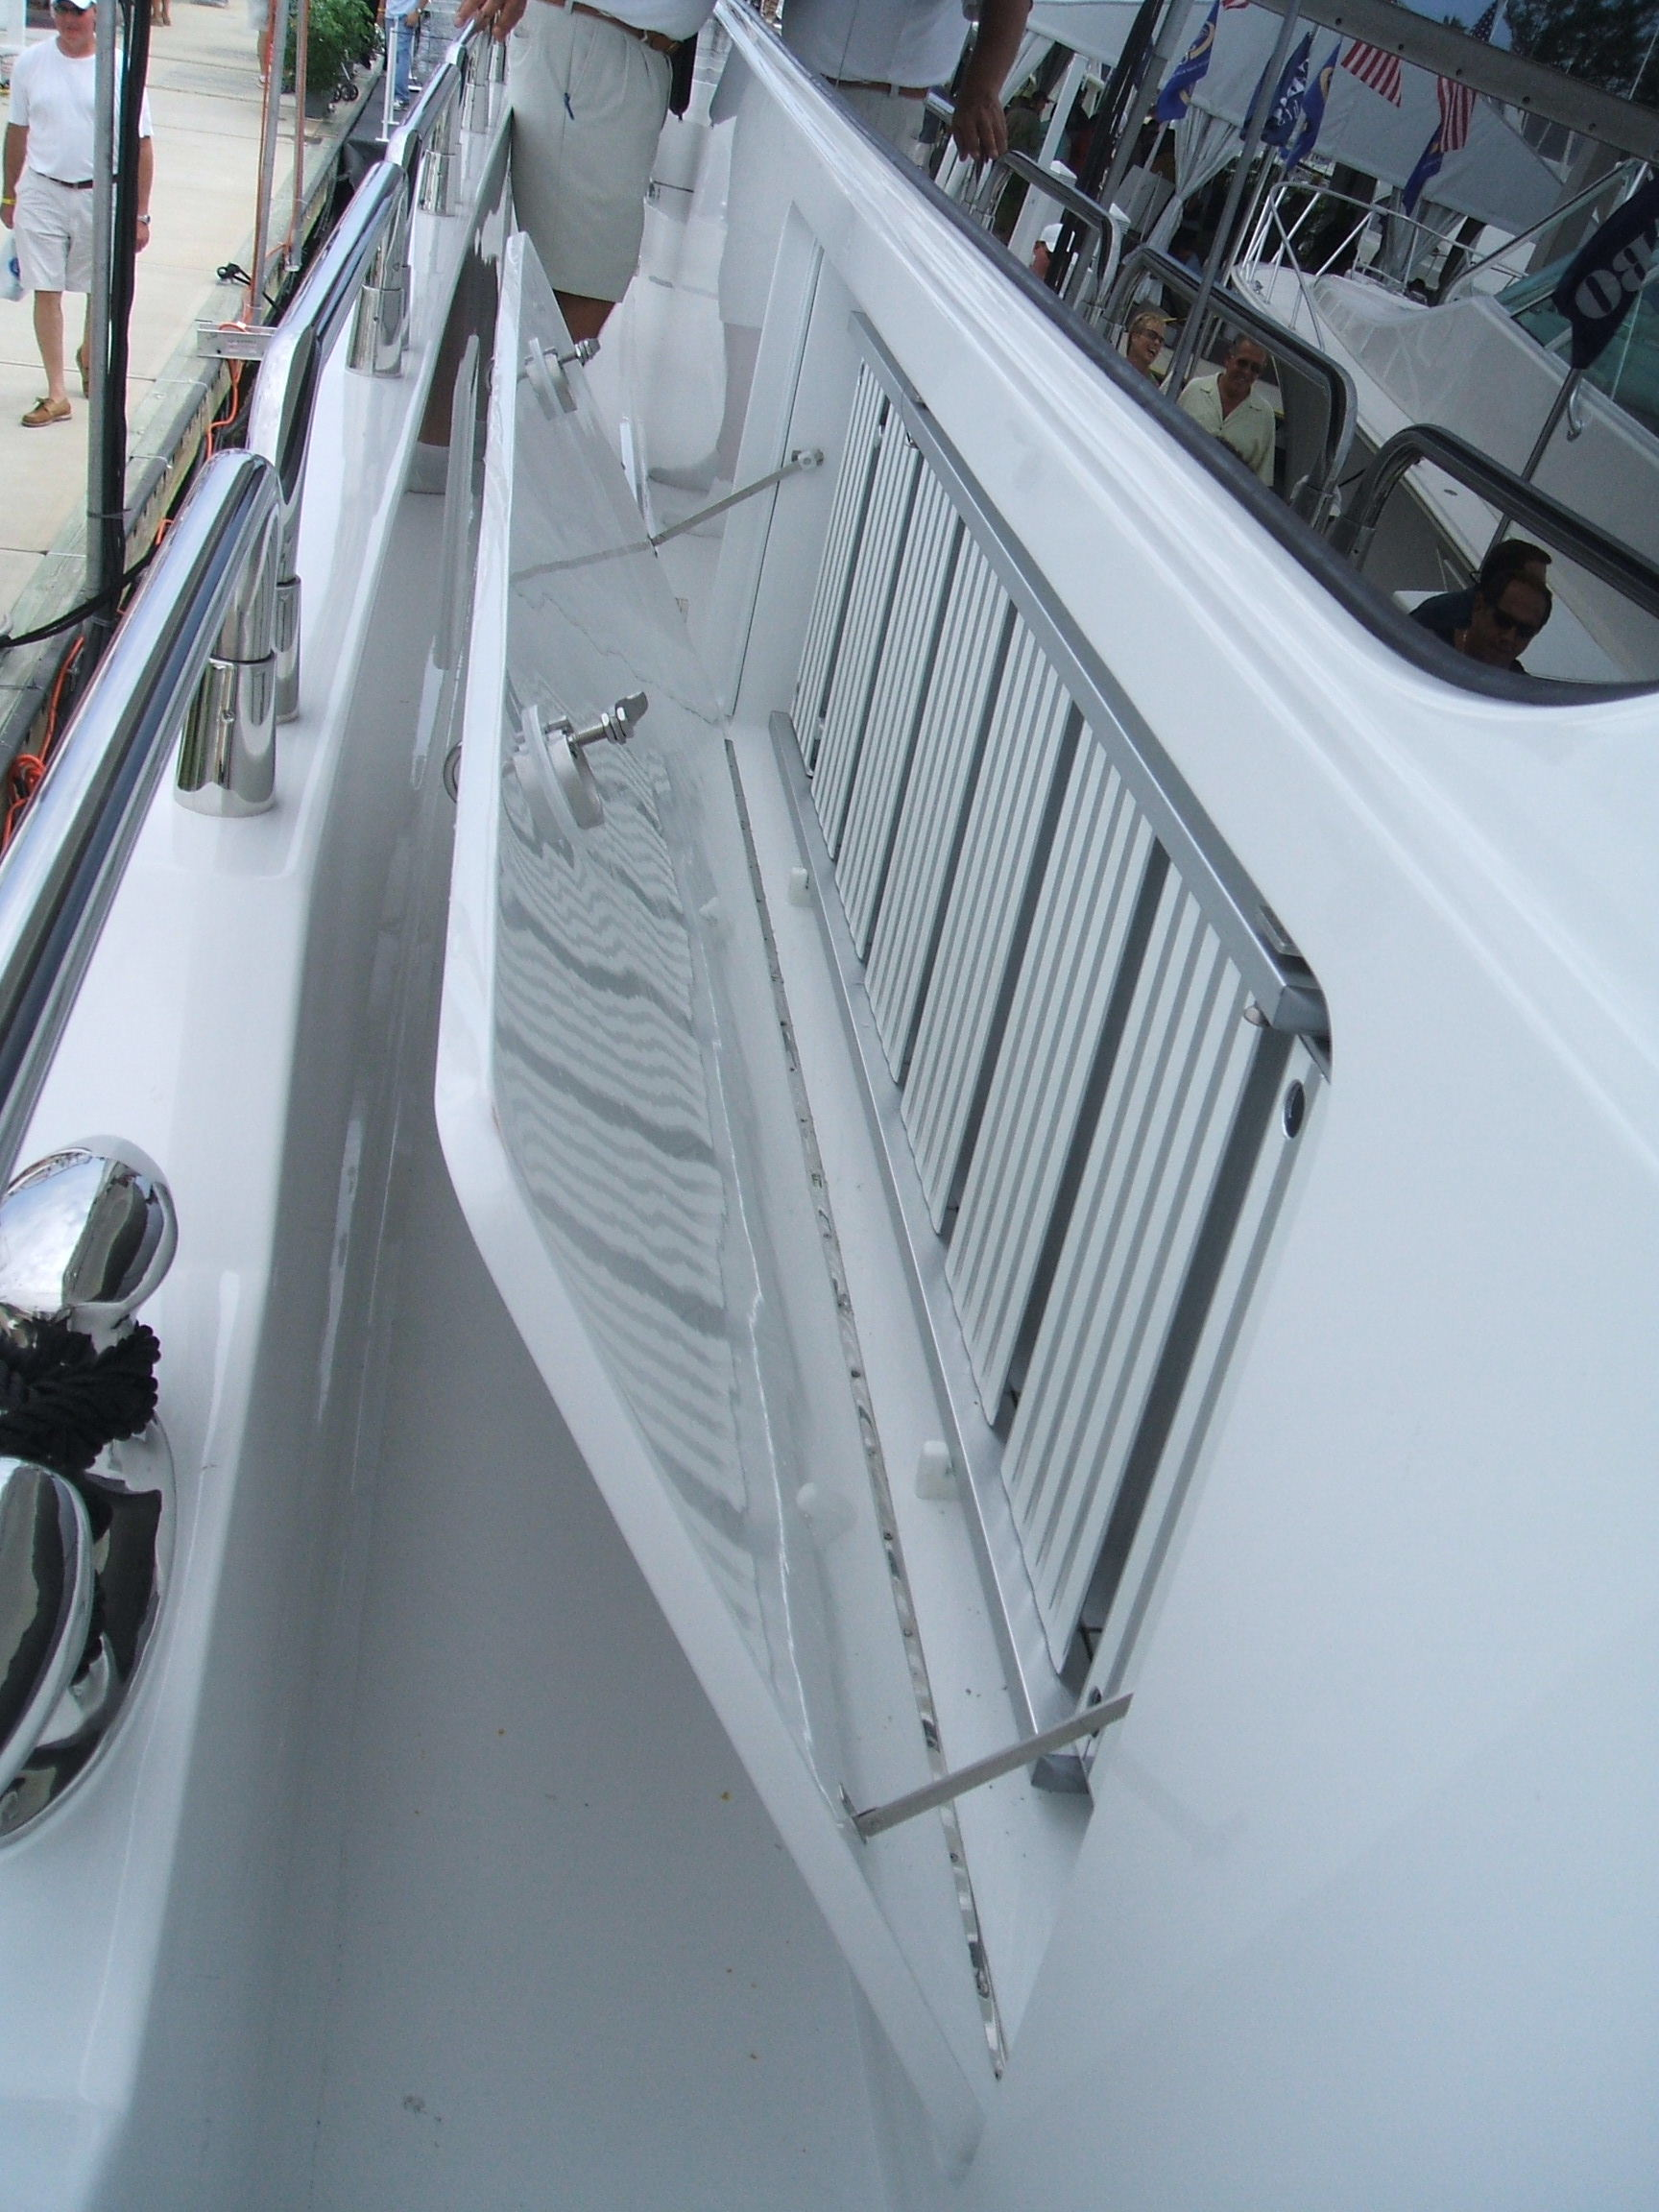 Sea Stair and Sea Ladder Stowage Kits